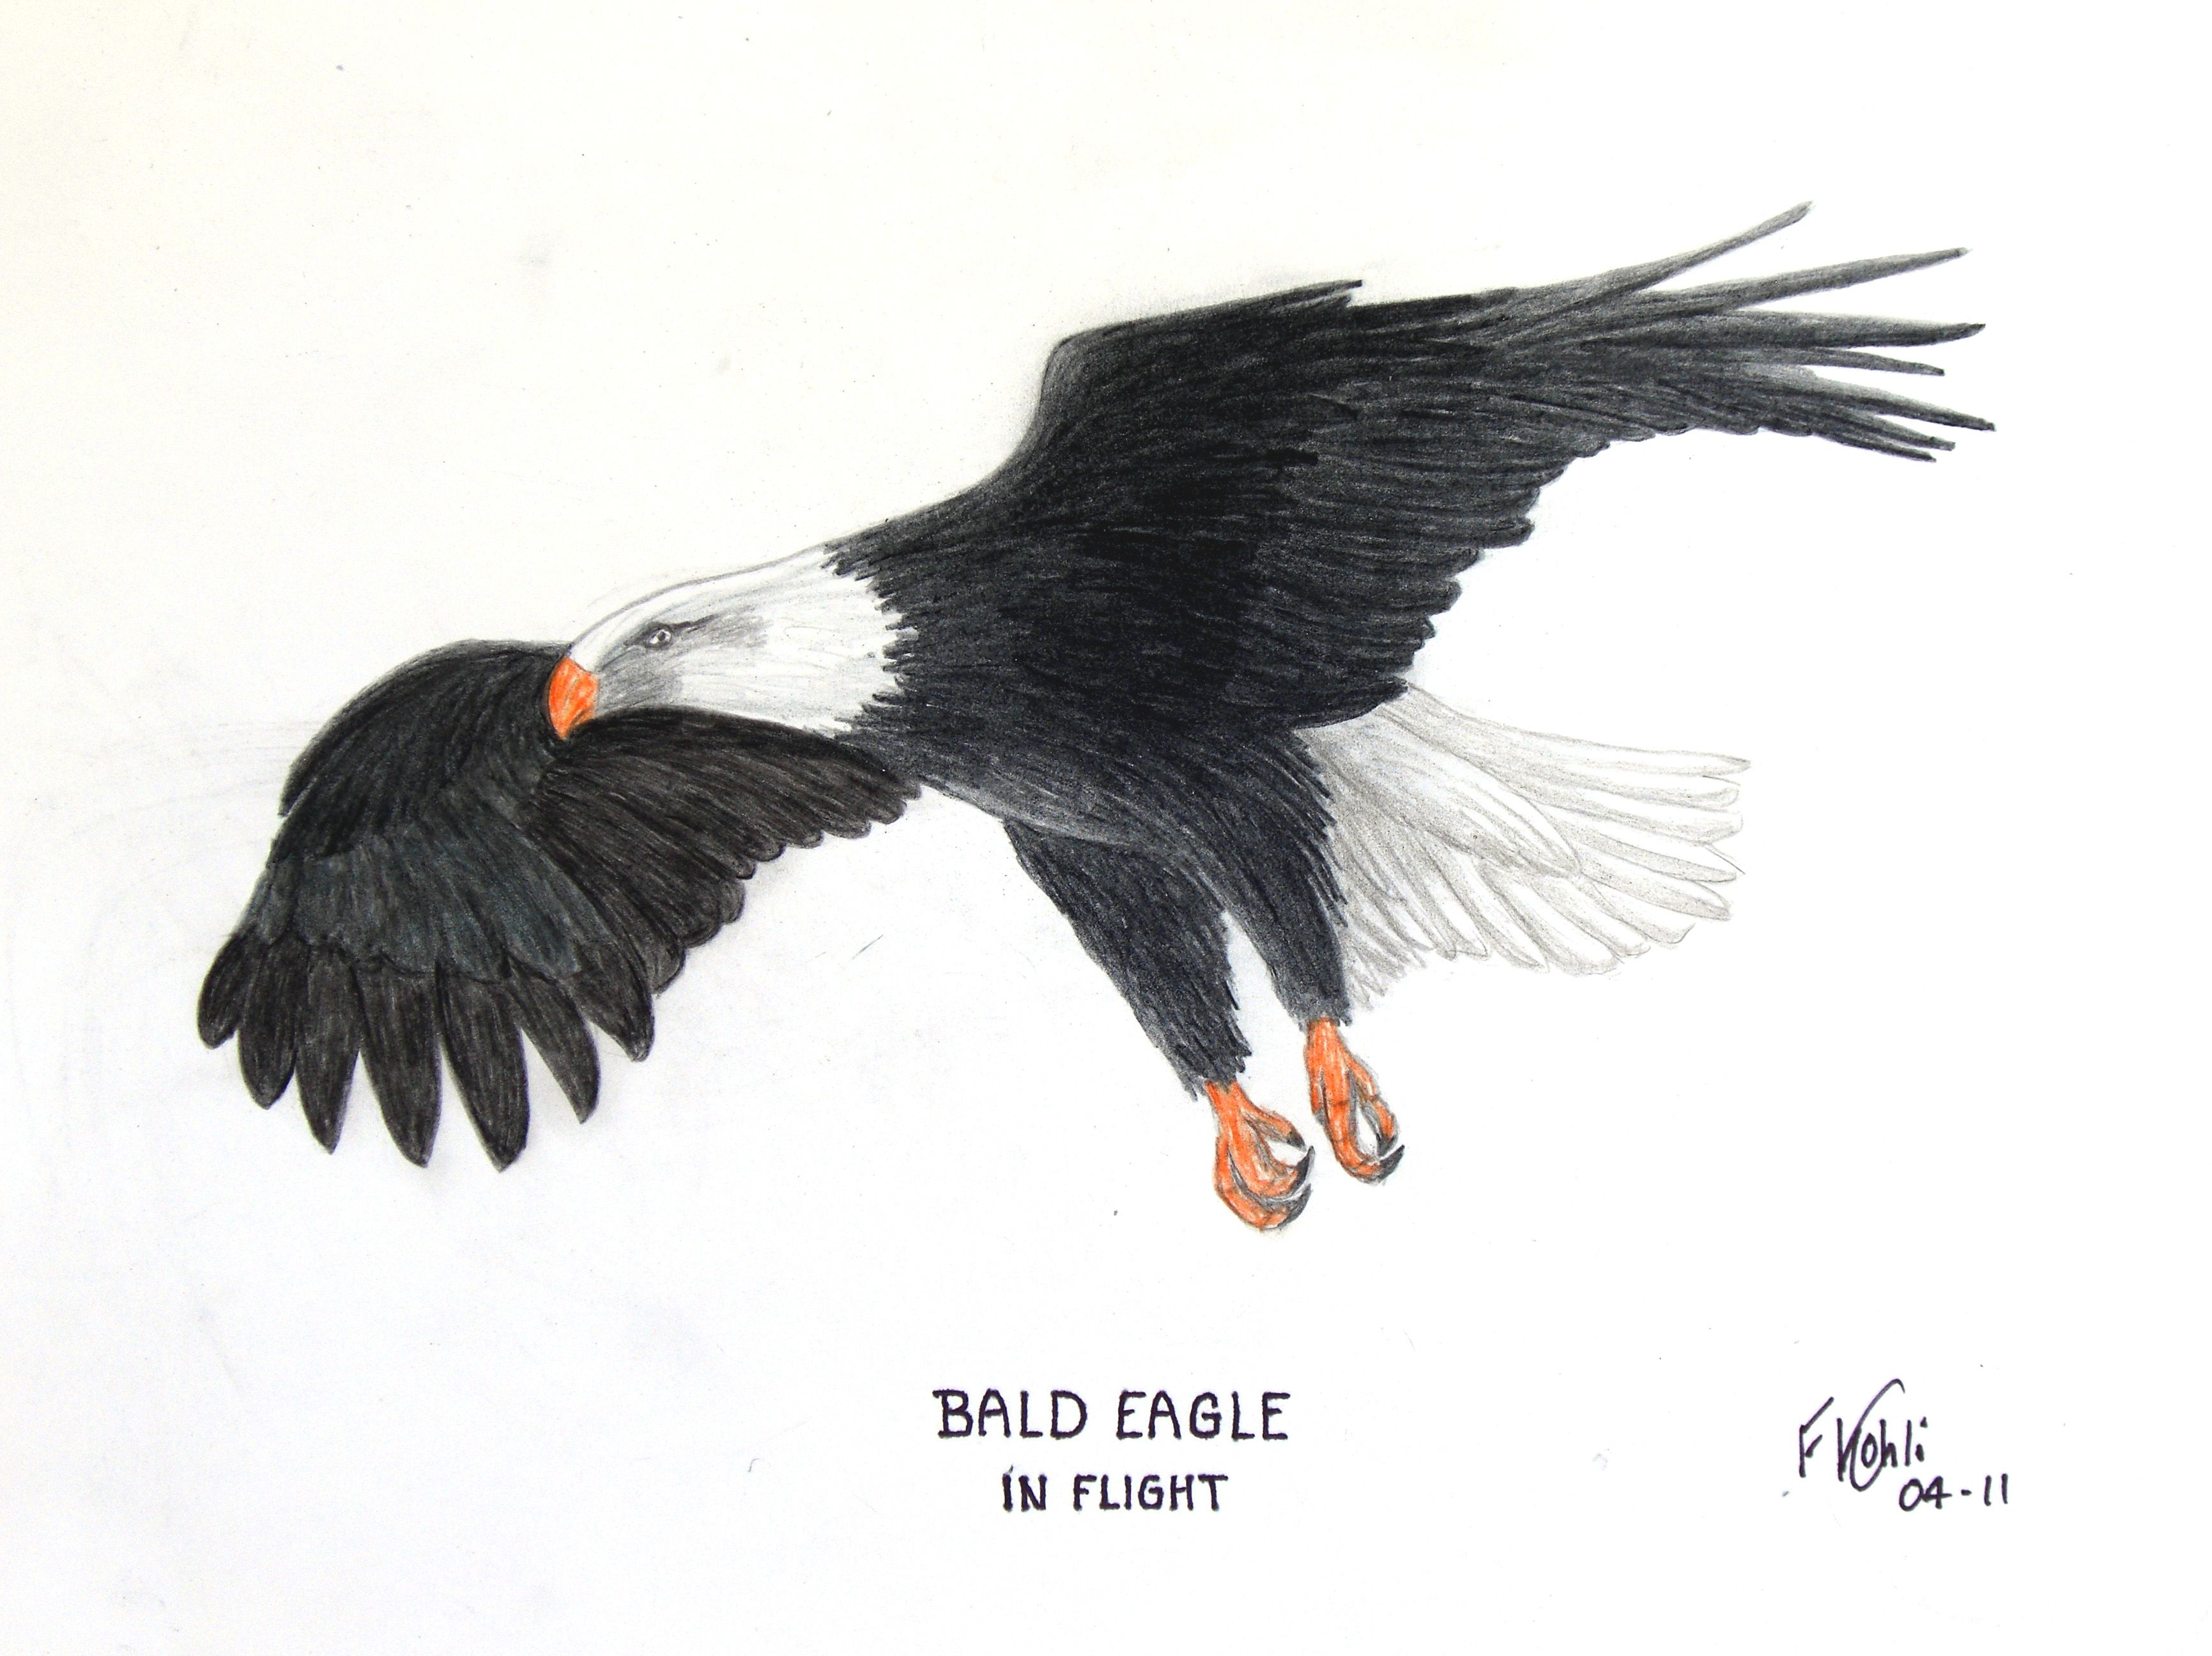 bald eagle in flight colored pencil drawing for prints go to